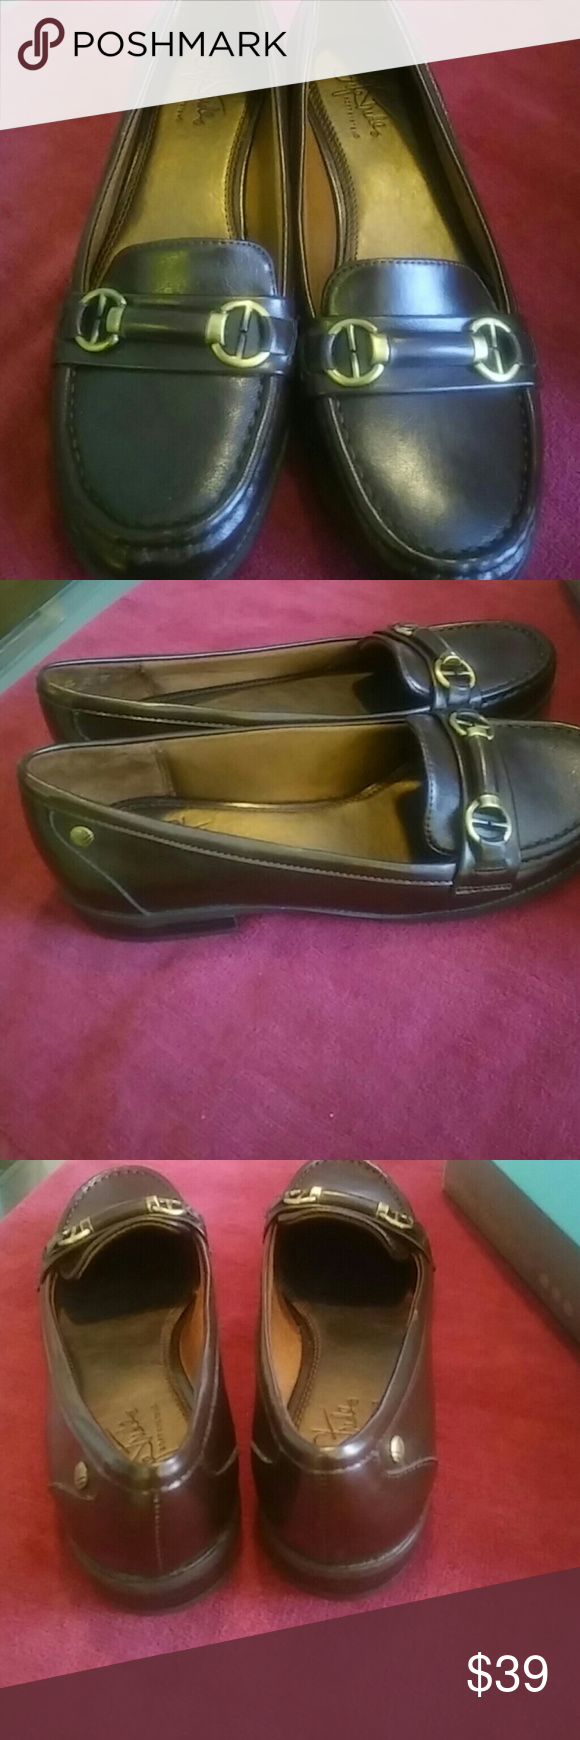 Kissed Dark brown loafers New never worn beautiful leather shoes made for comfort Life Stride Shoes Flats & Loafers